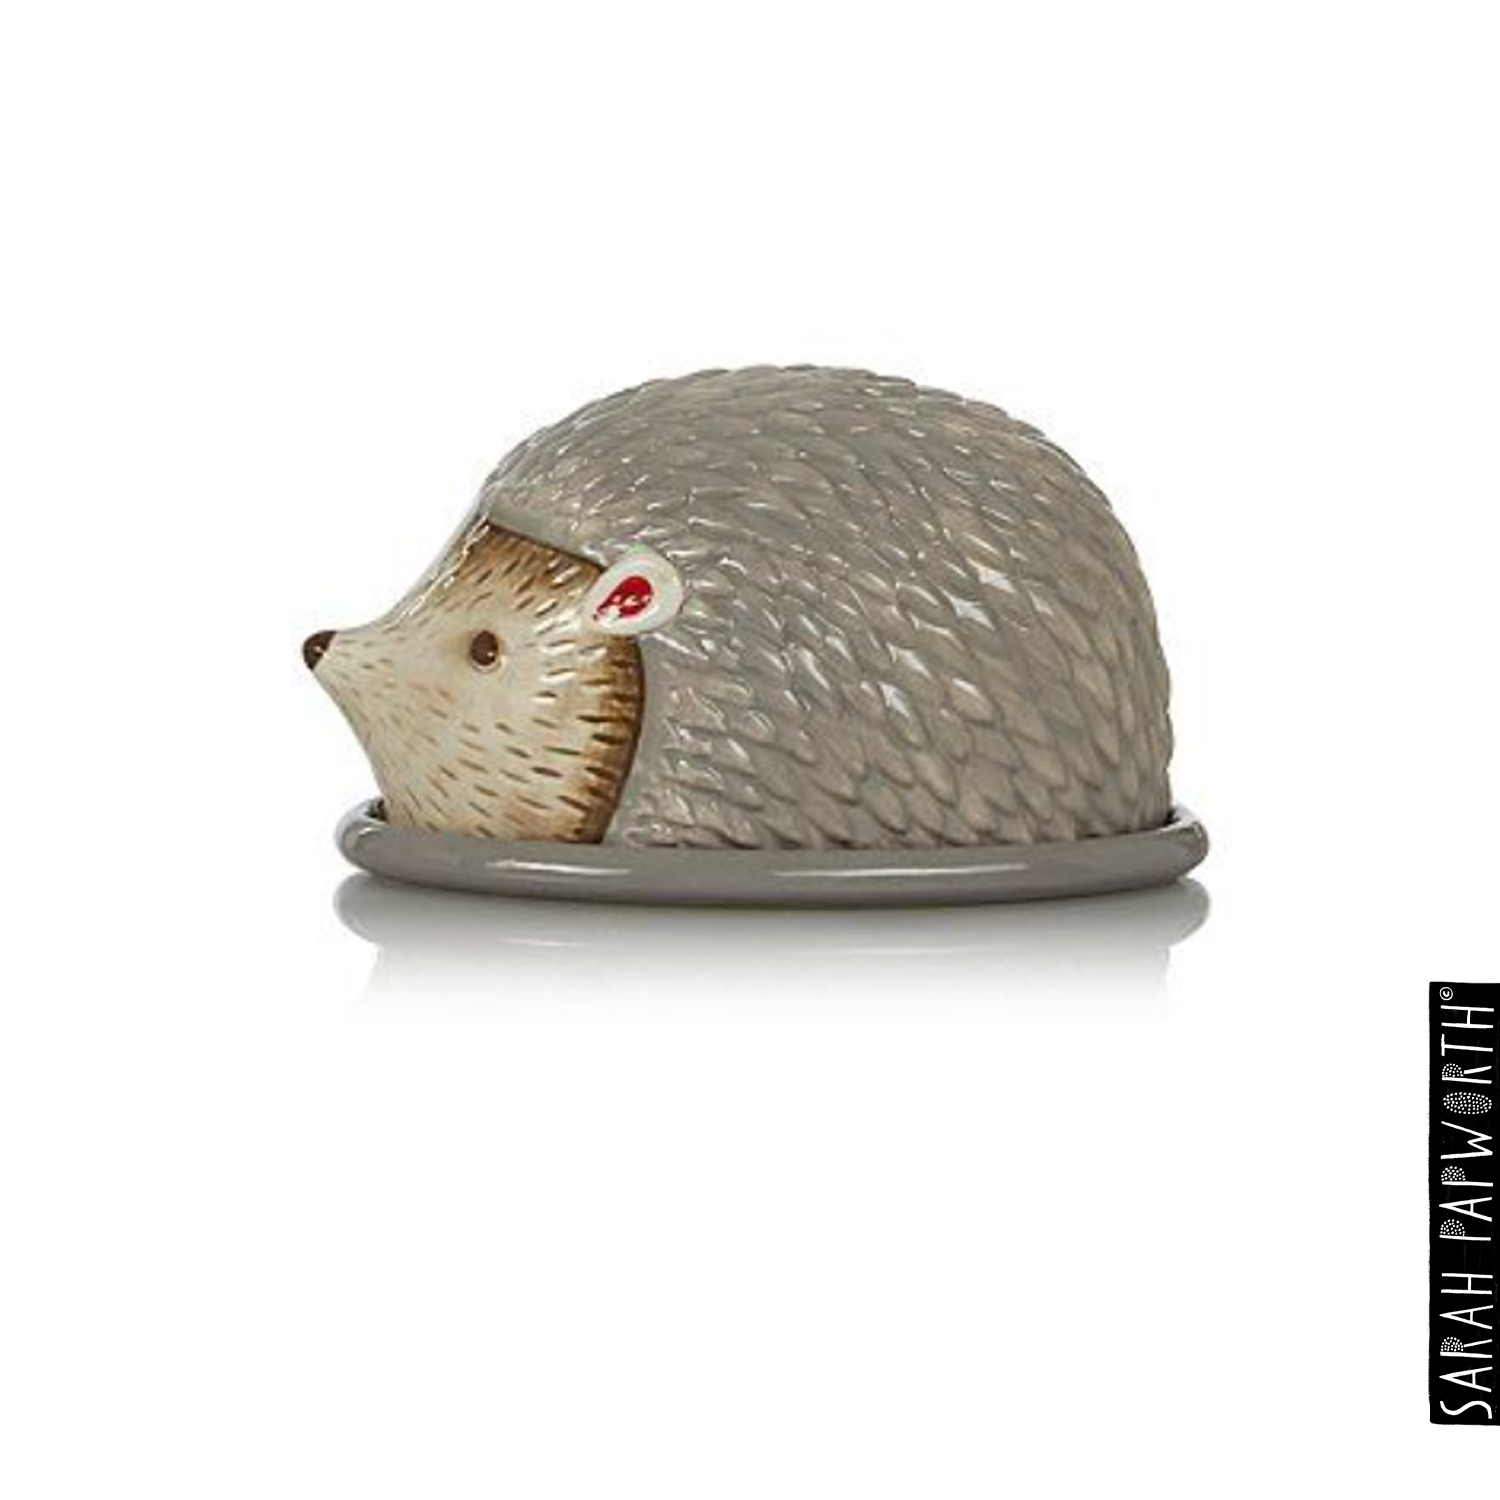 Hedgehog butter dish